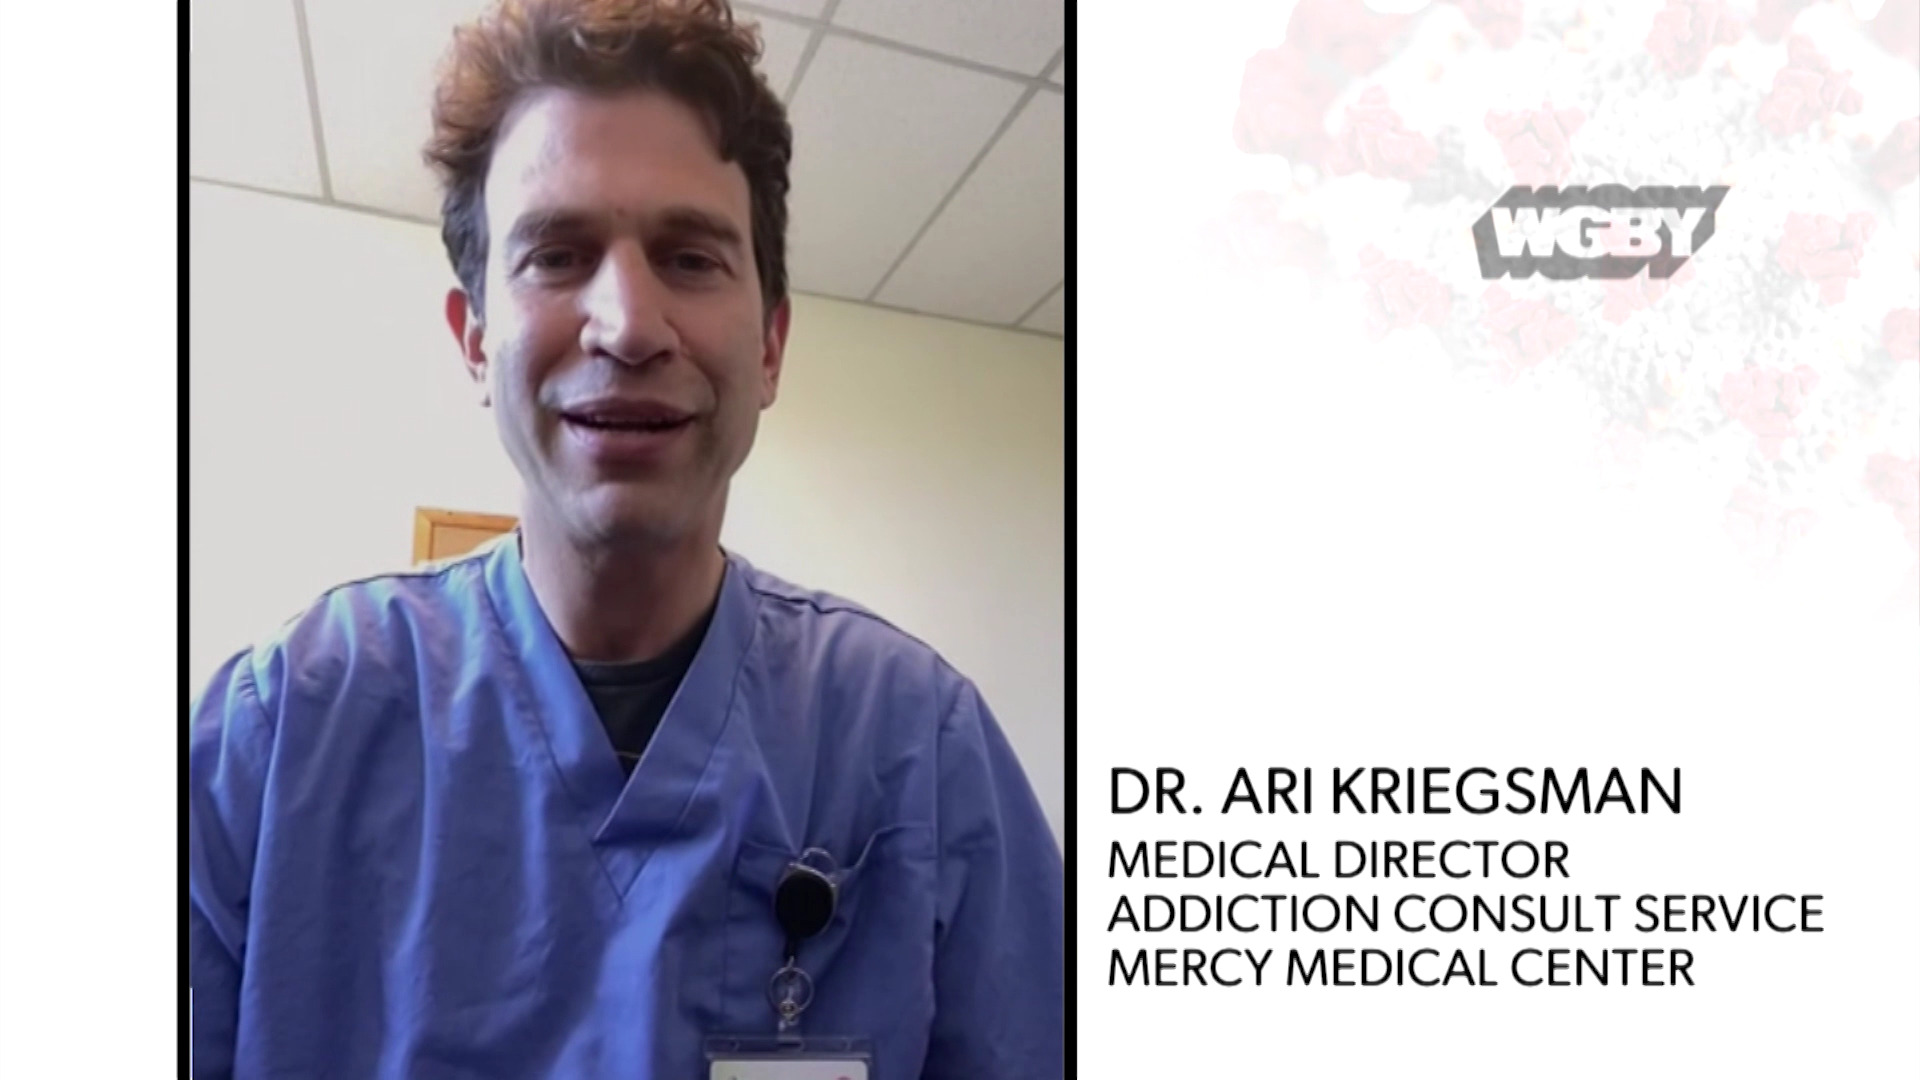 WATCH: Mercy Medical Center's Dr. Ari Kriegsman talks about the impact of COVID-10 on opioid addiction and treating addiction during the pandemic.